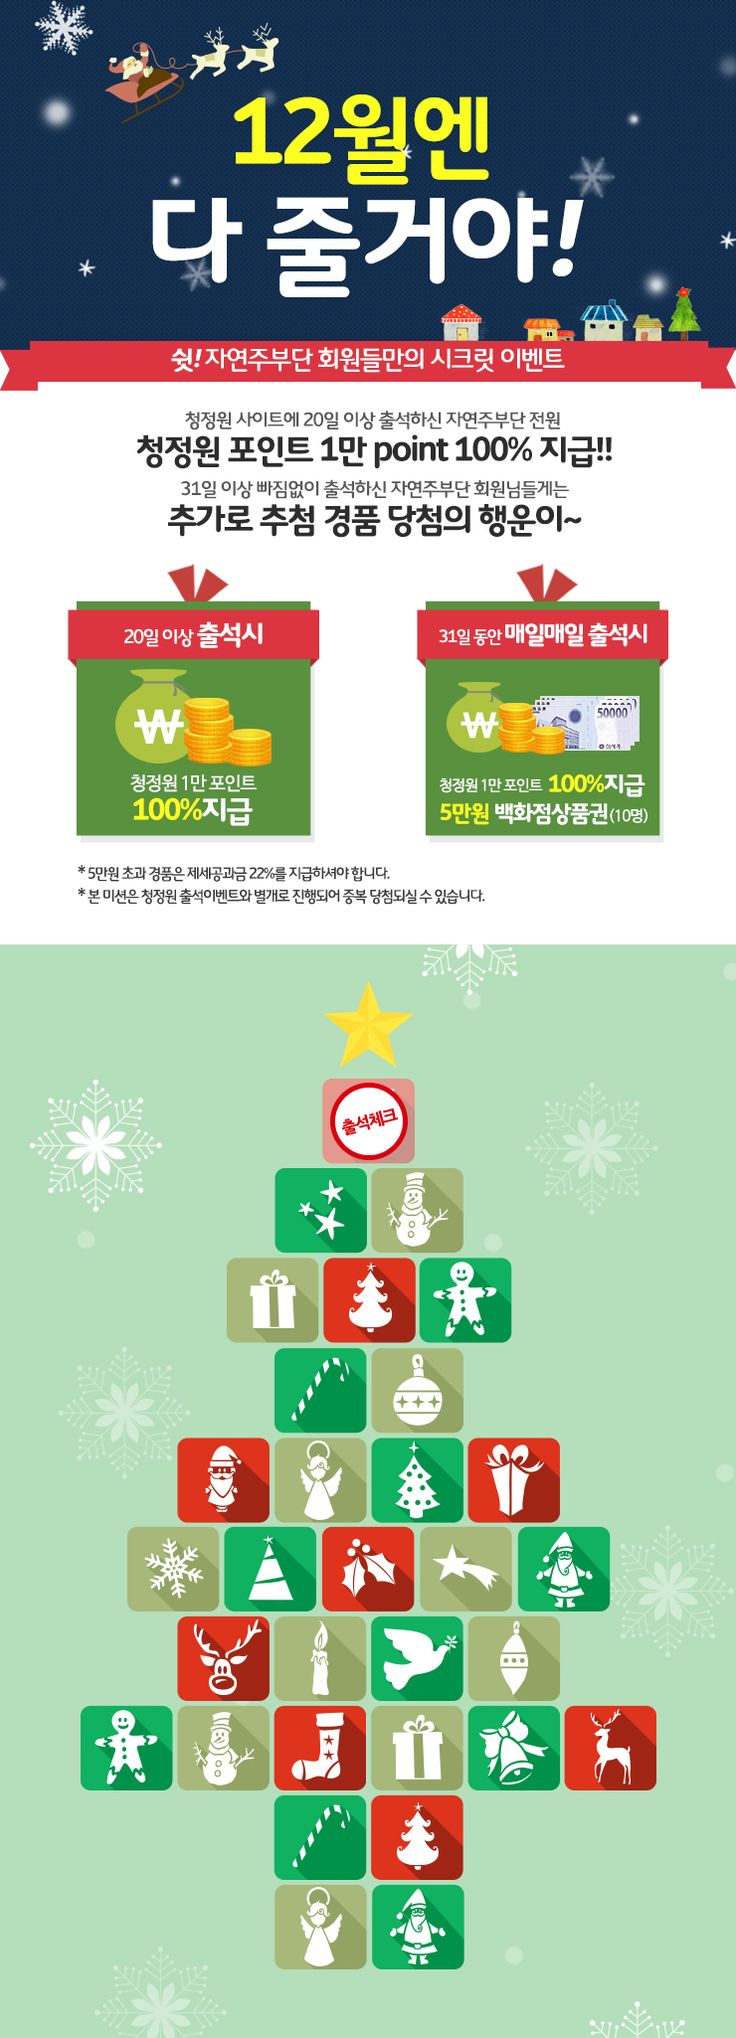 청정원 ]자연주부단 12월 출석체크 이벤트    http://www.chungjungone.com/renewal/nature/eventIngView.jsp?seq=14622